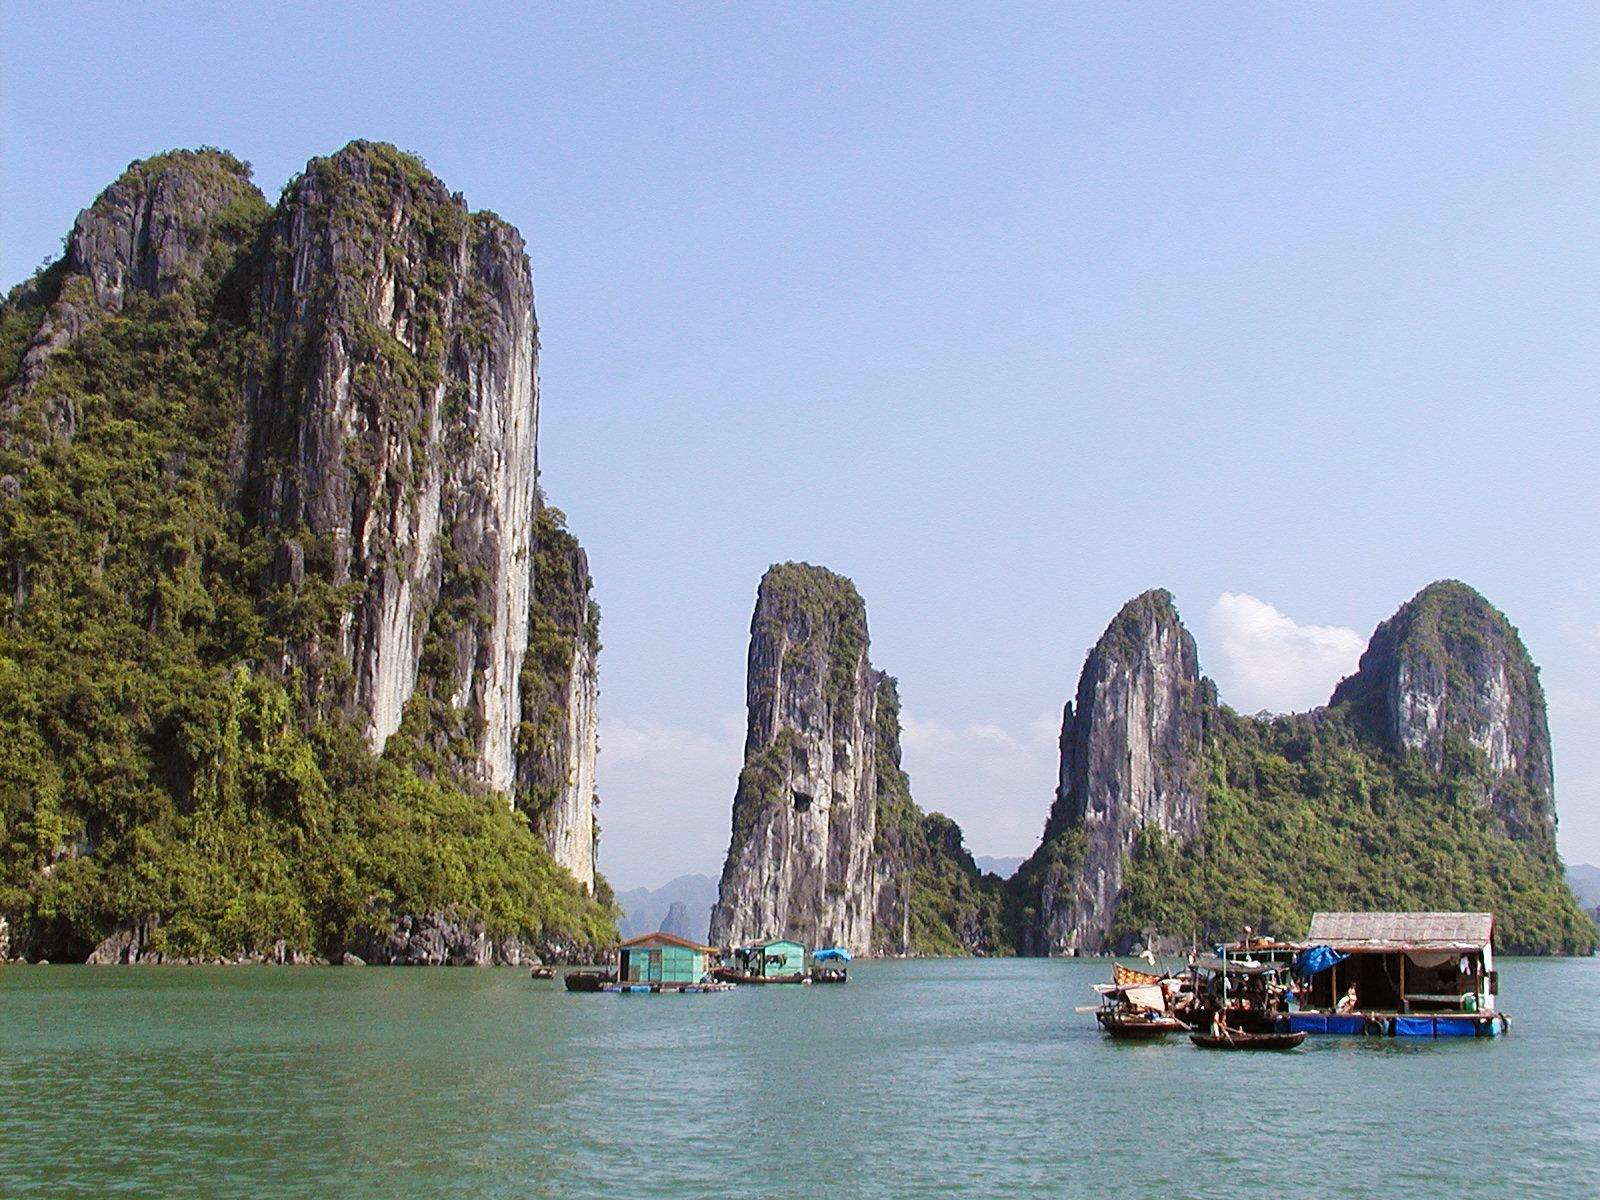 Halong bay, beautiful places in Vietnam through eyes of foreigners, new beautiful places to see in Vietnam